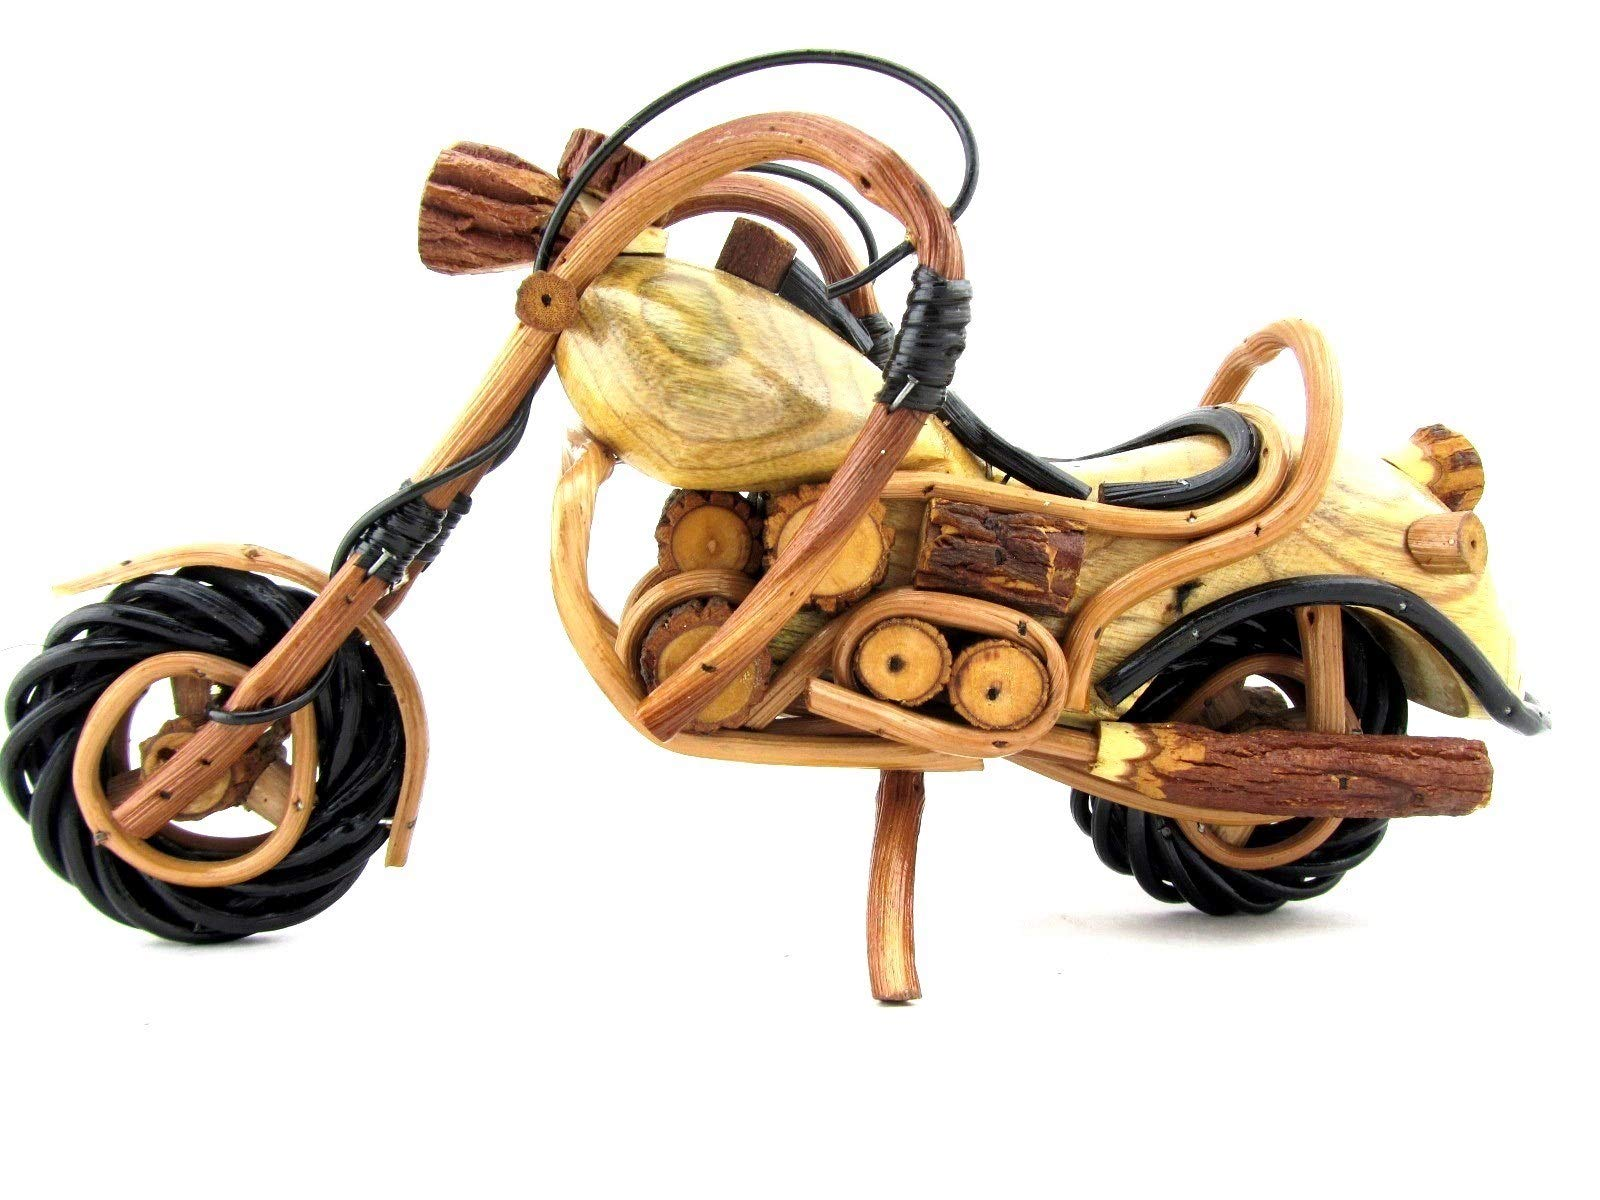 Blue Orchid Wooden Motorcycle Figurine, Chopper Motor Bike Model, Handmade Collectible Sculpture, 11.5 Inches by Blue Orchid